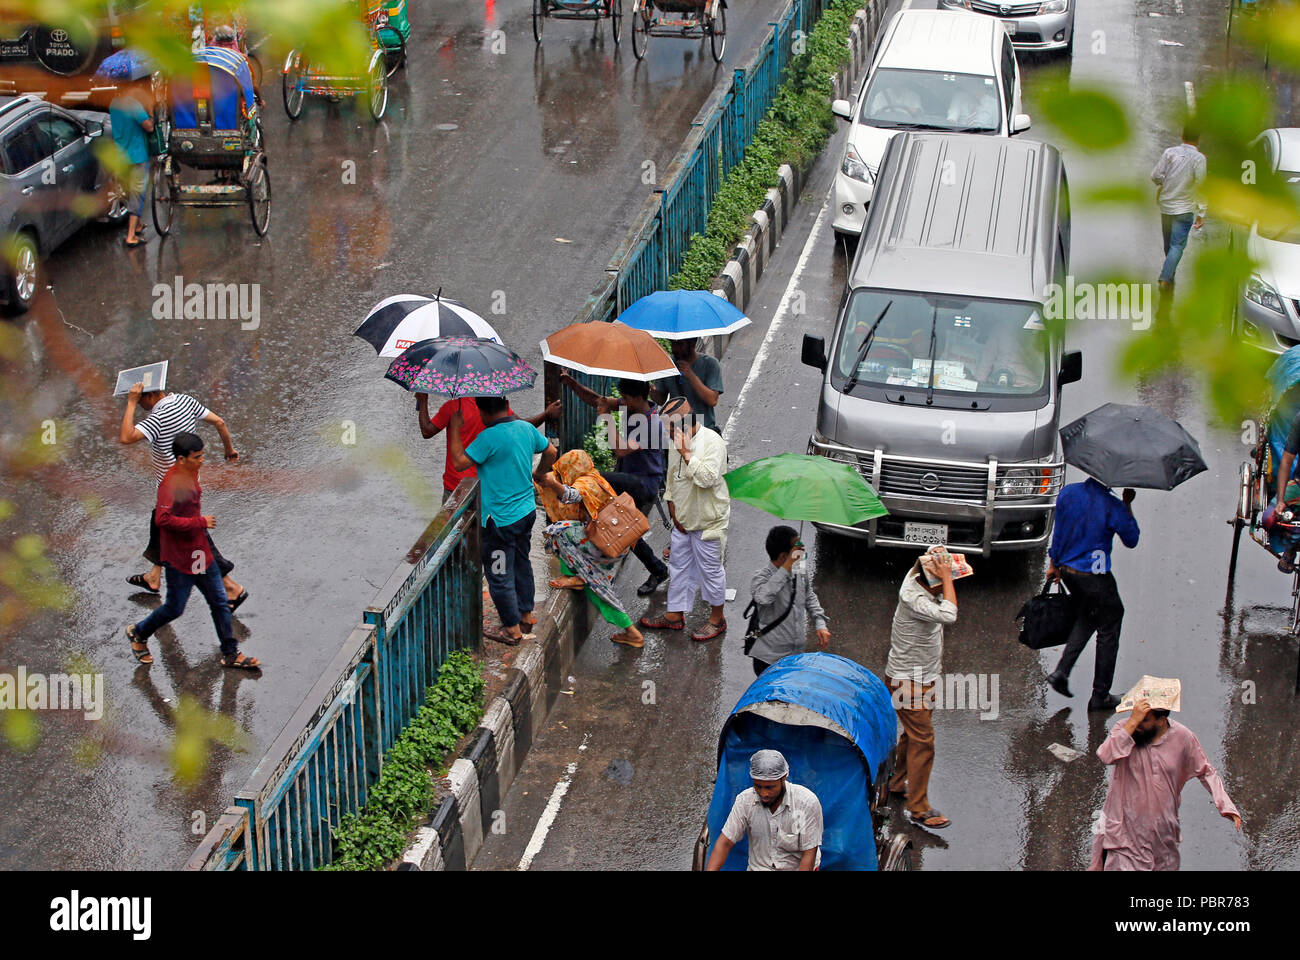 City dwellers caught in heavy shower at Capital's Purana Paltan area near National Baitul Mukarram Mosque, Dhaka, Bangladesh. July 24, 2018 - Stock Image